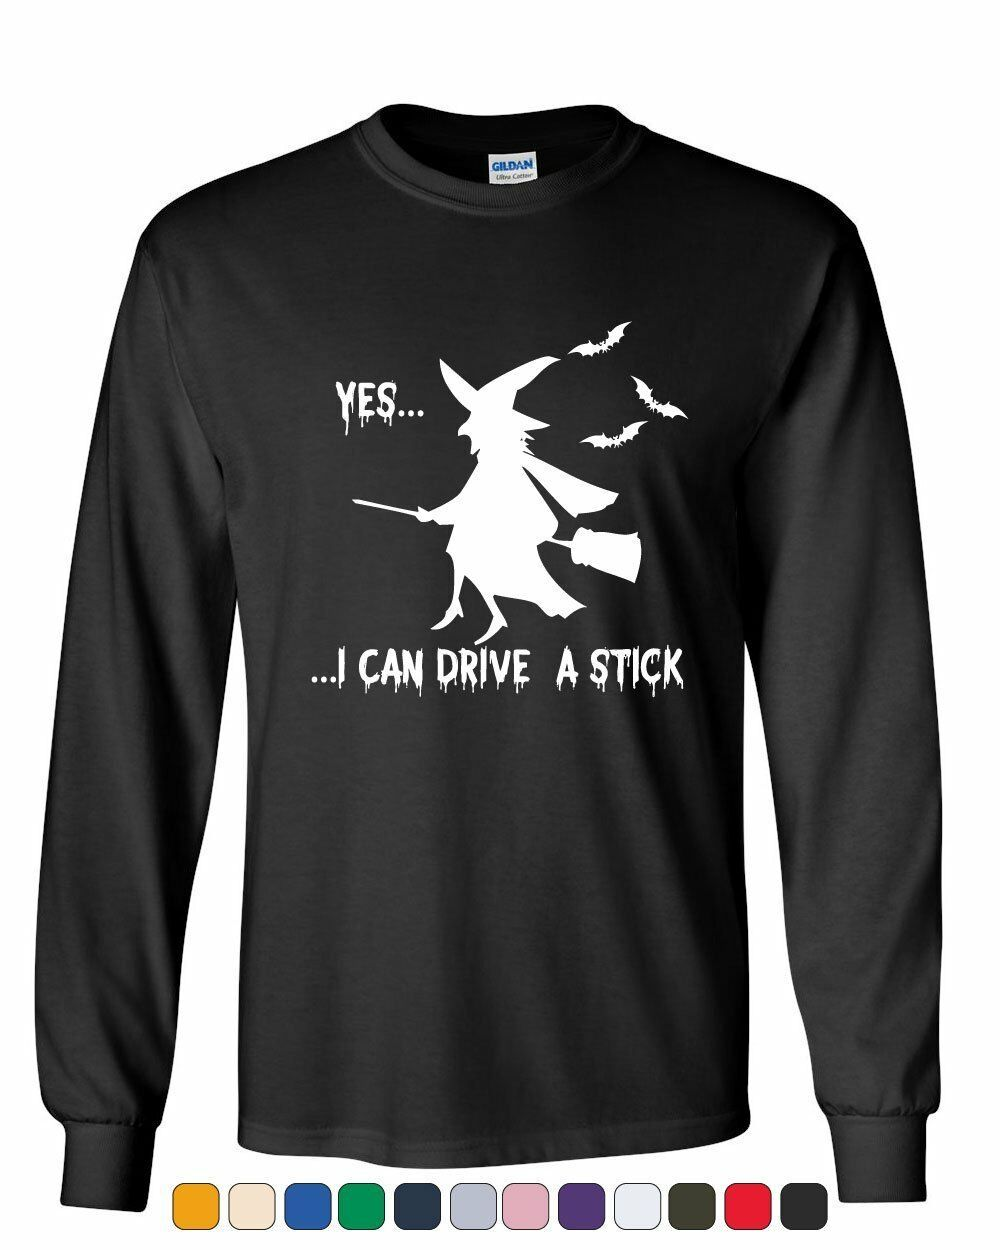 Yes, I Can Drive A Stick Long Sleeve T-Shirt Funny